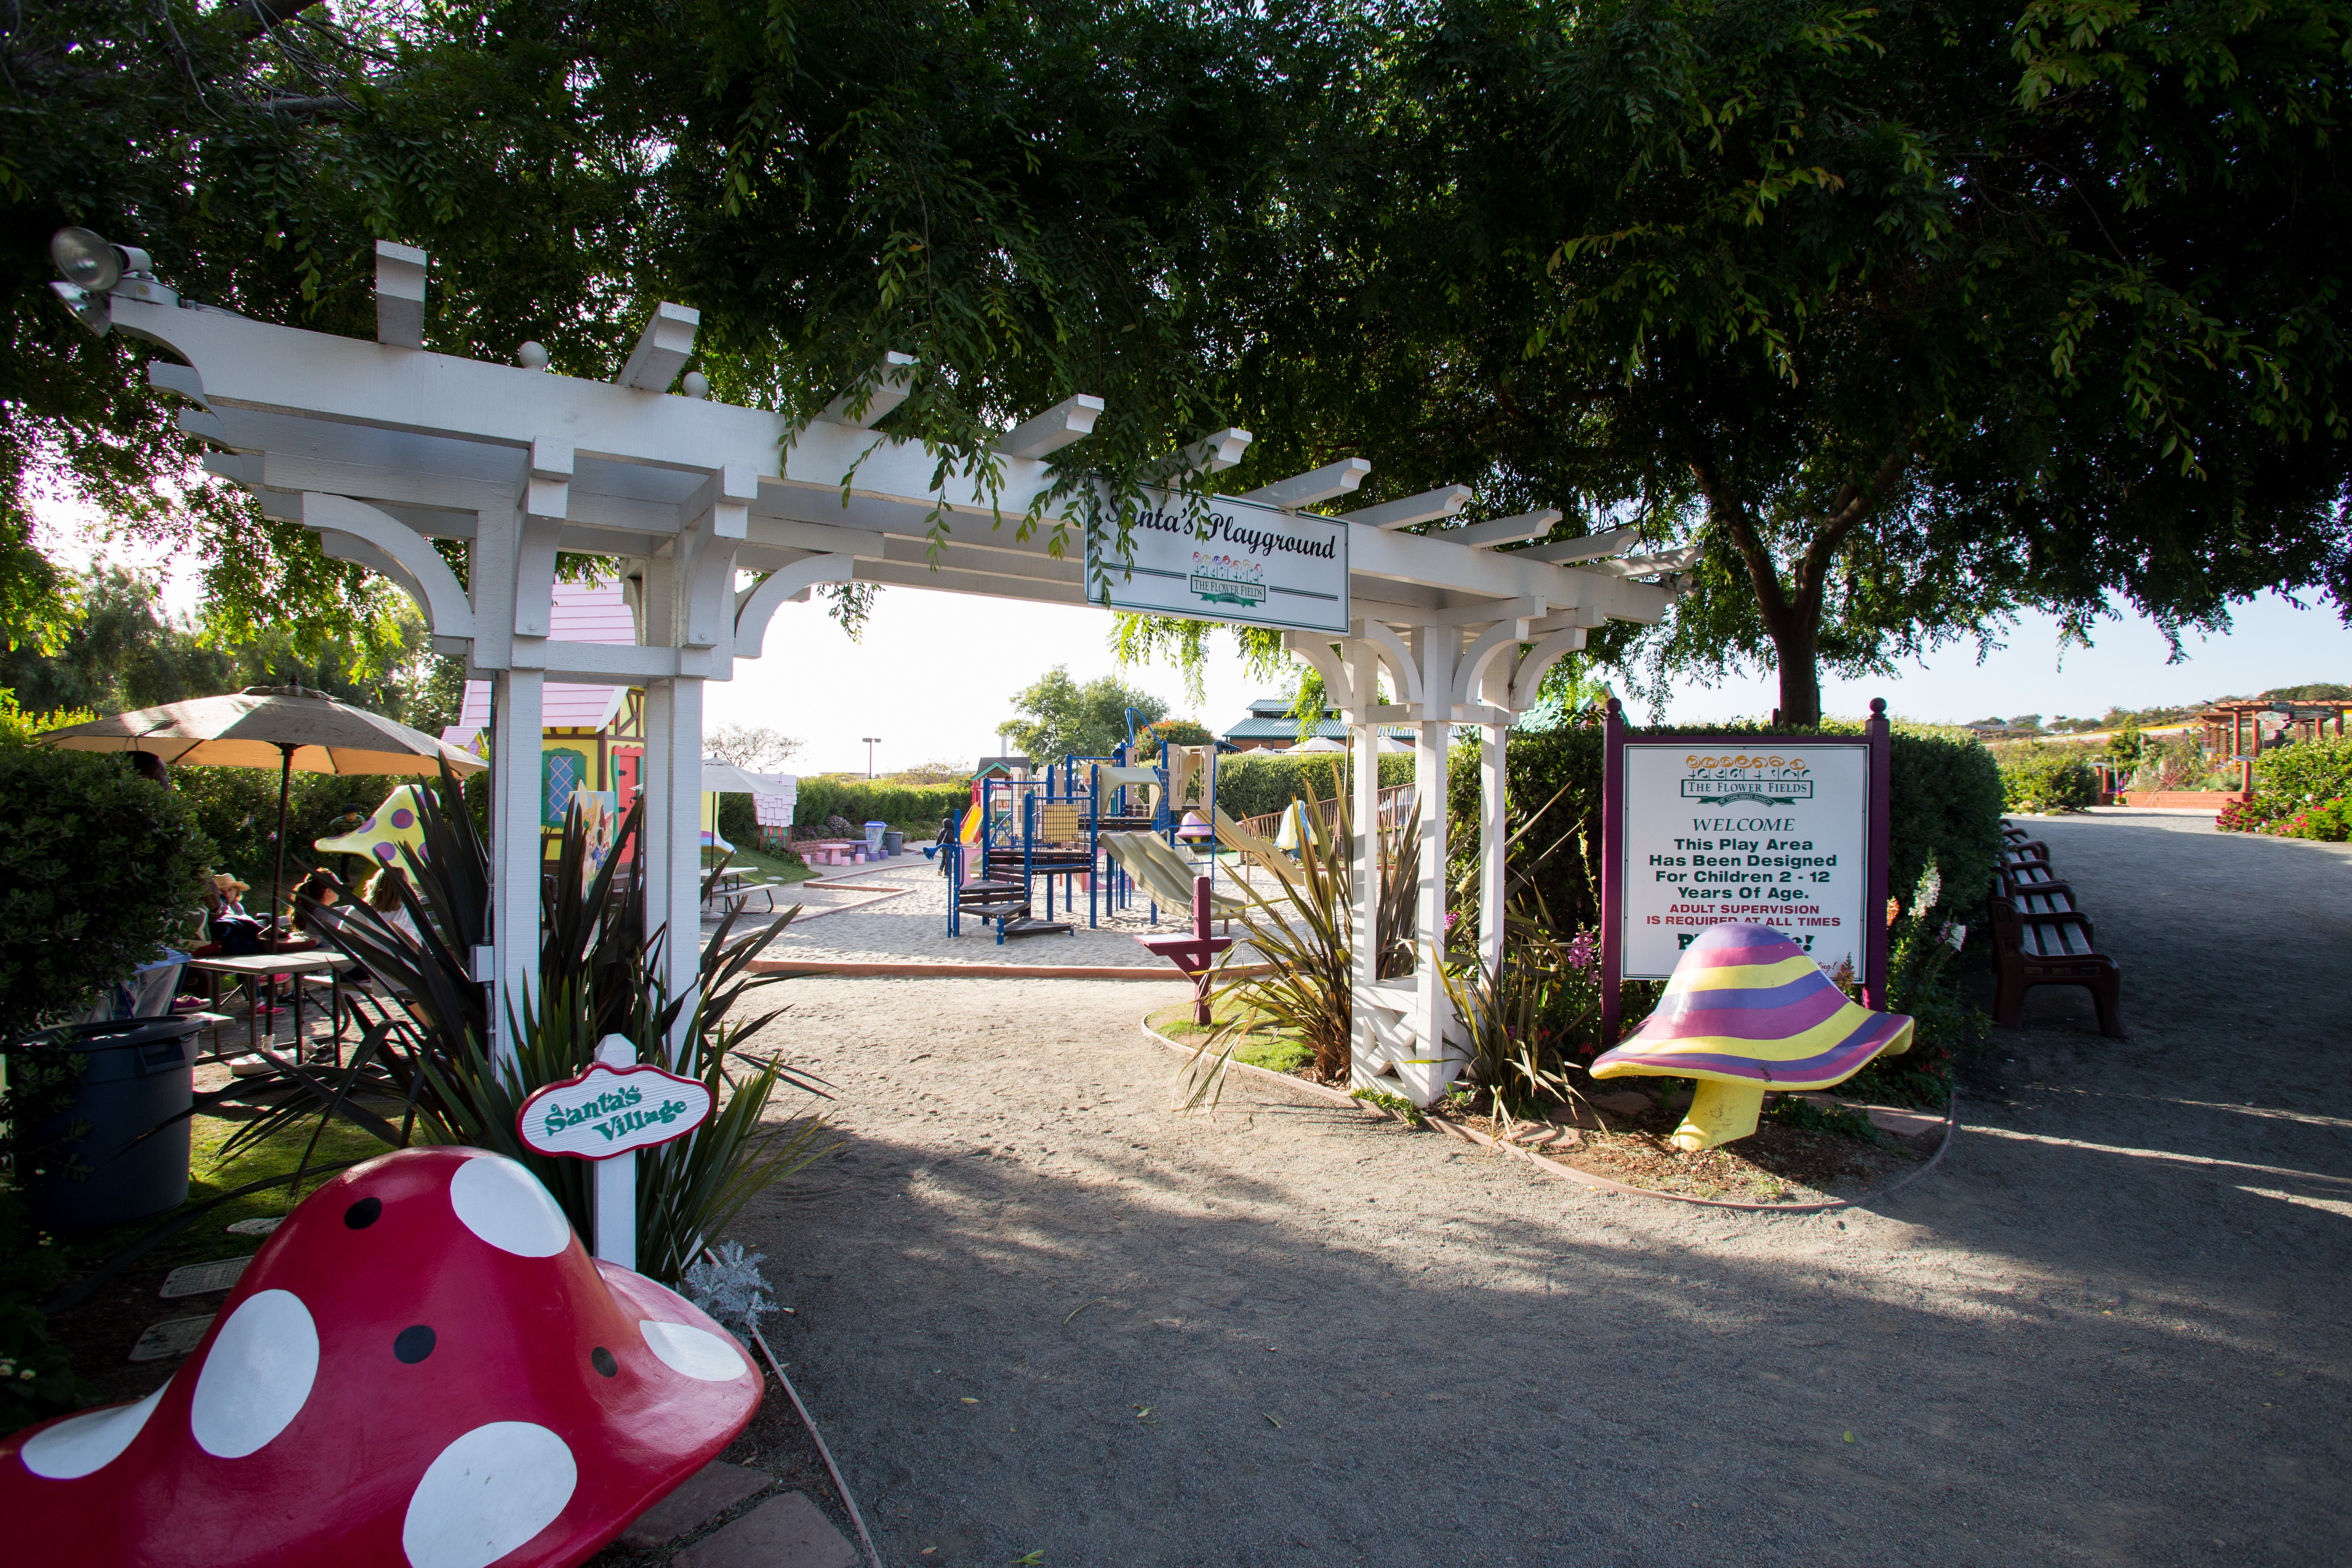 The entrance to Santa's Playground at The Flower Fields at Carlsbad Ranch.